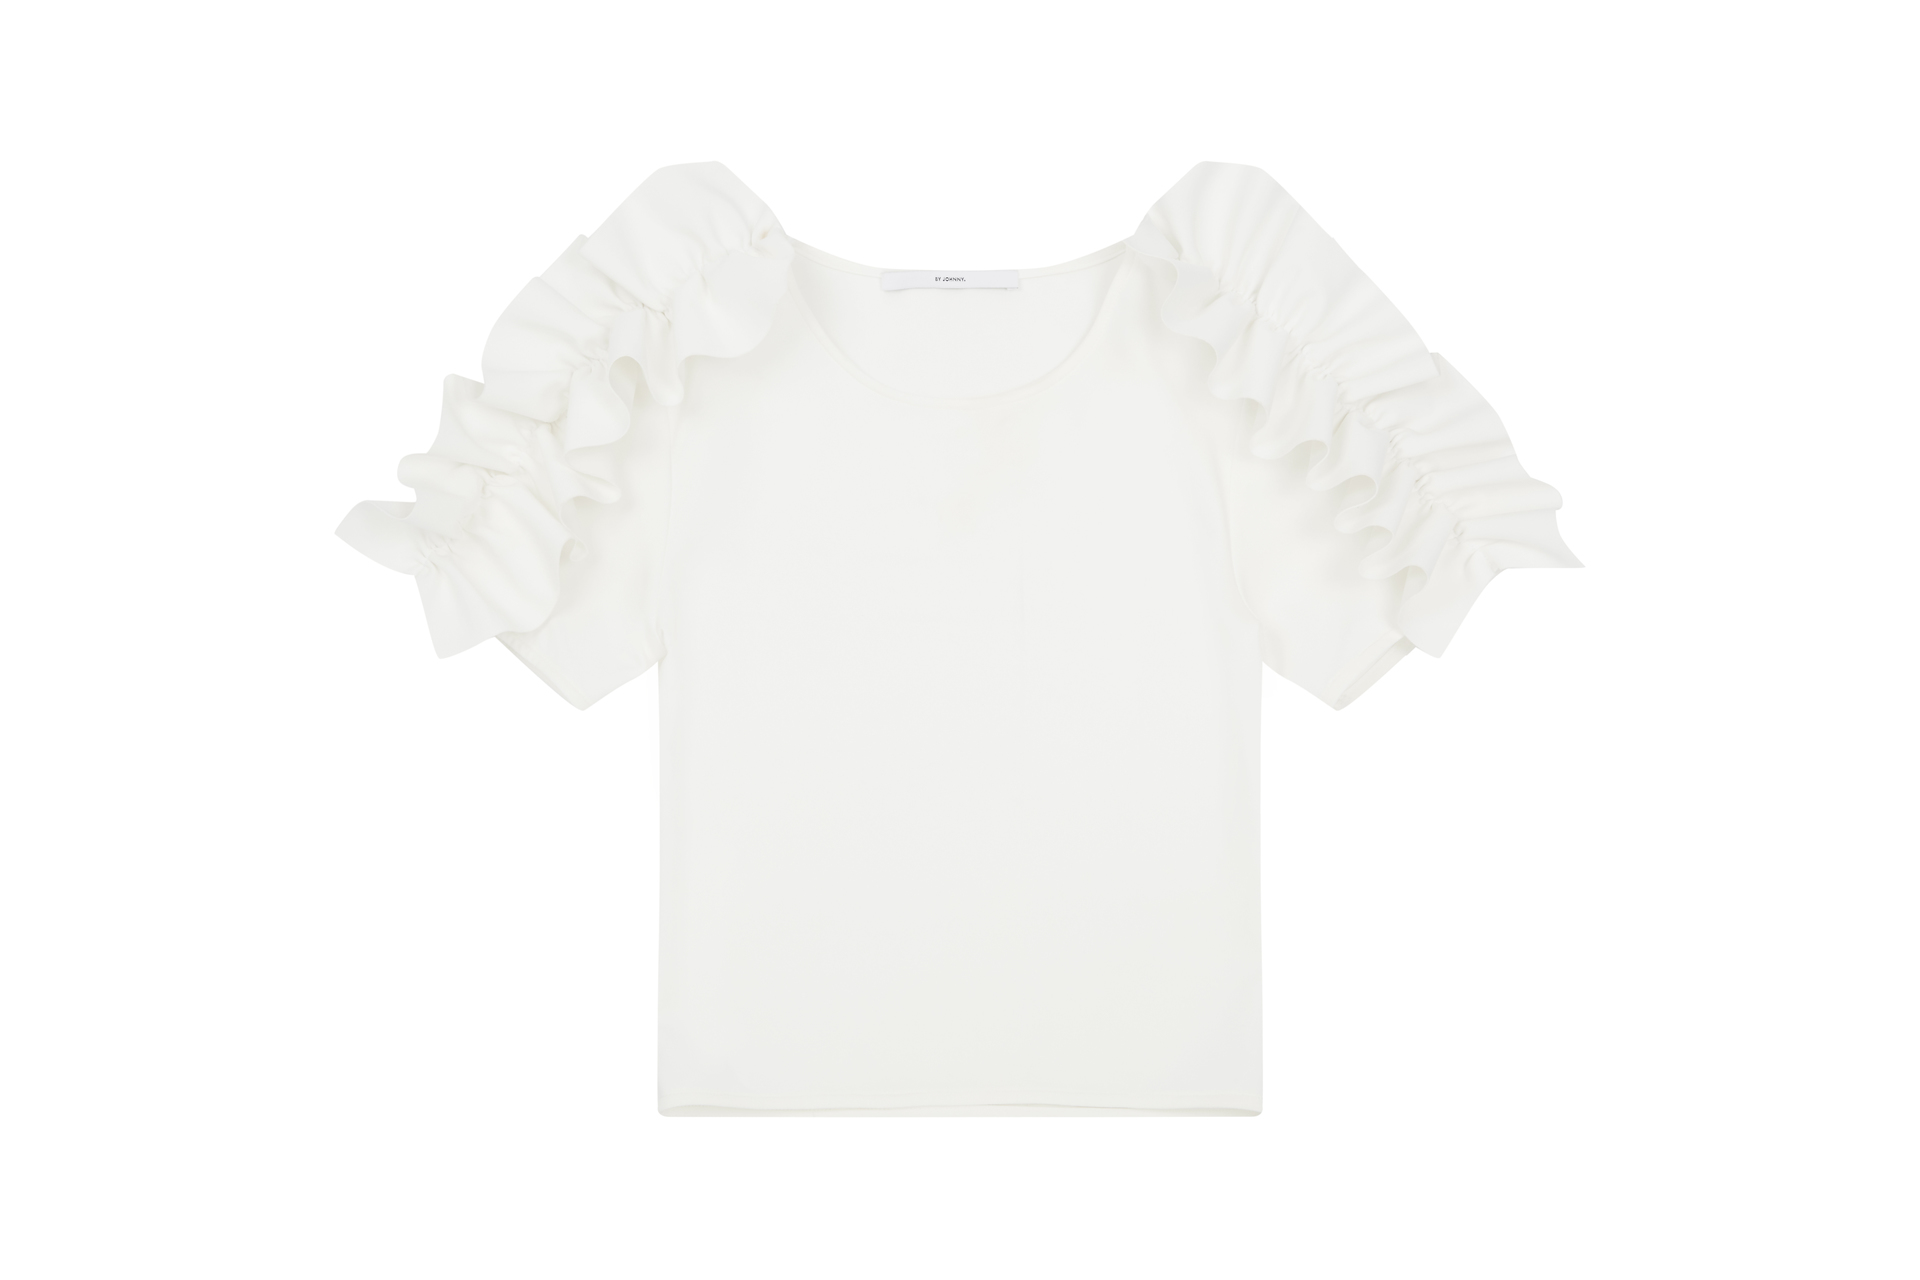 72dpi-239209d97f-19.-BY-JOHNNY,-Ruffle-Sleeve-Tee-White,-250,-www.byjohnny.com.au